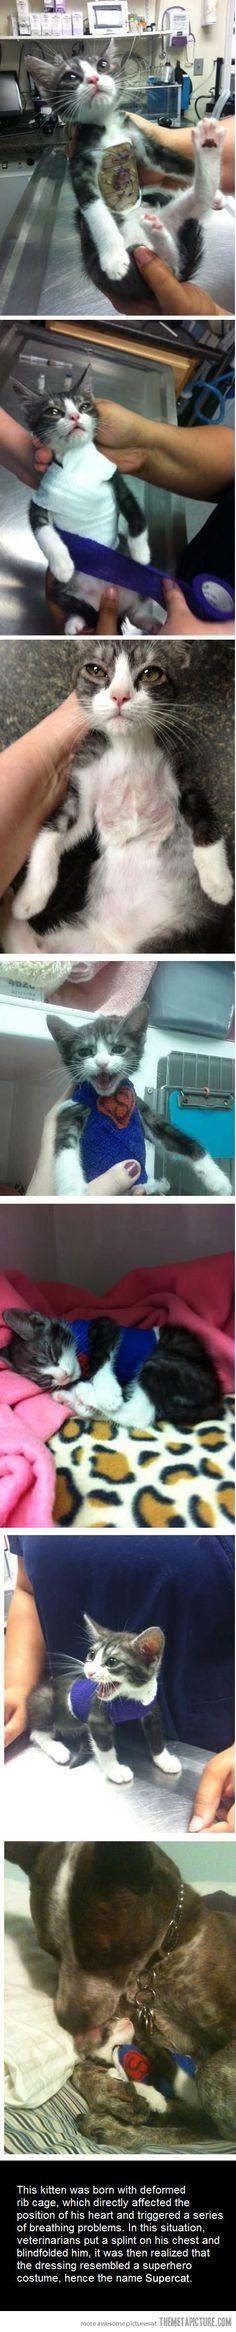 Awwww omg this is sad at first, but the cutest thing ever!!!: Cutest Pirate, Sweet, My Heart, Pirate Kitten, Animal